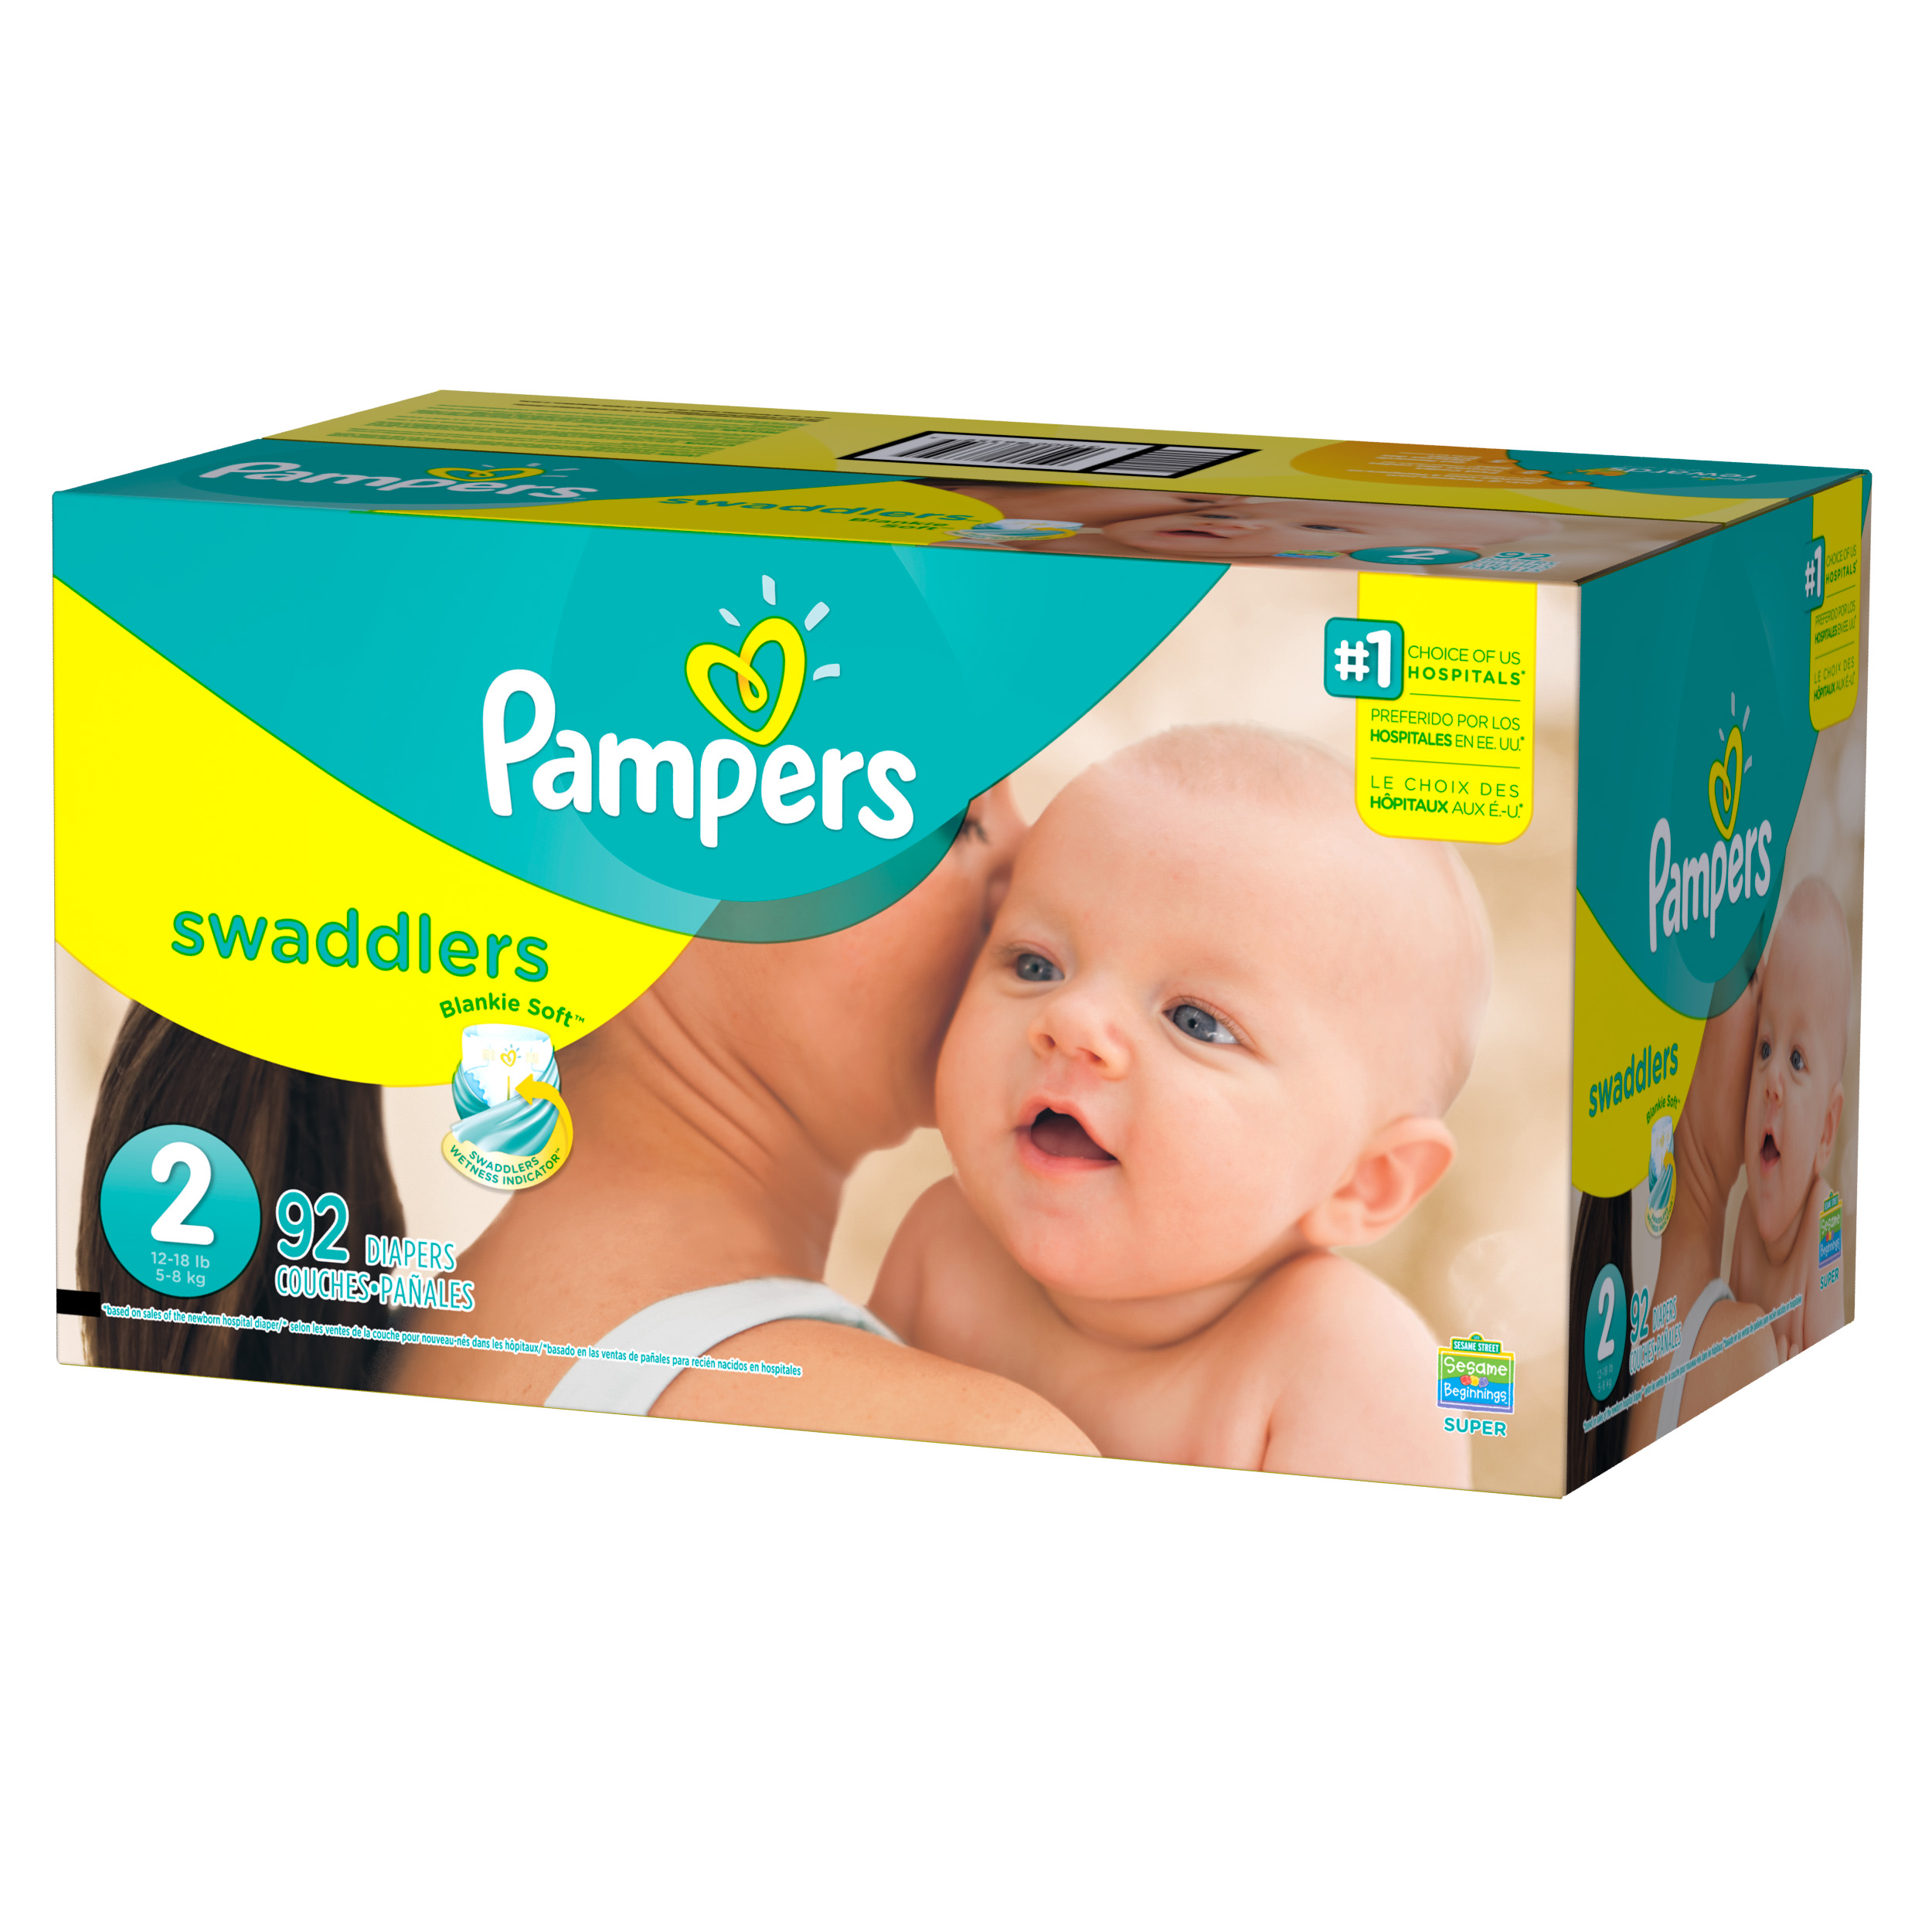 Pampers Swaddlers Diapers Size 2 92 count